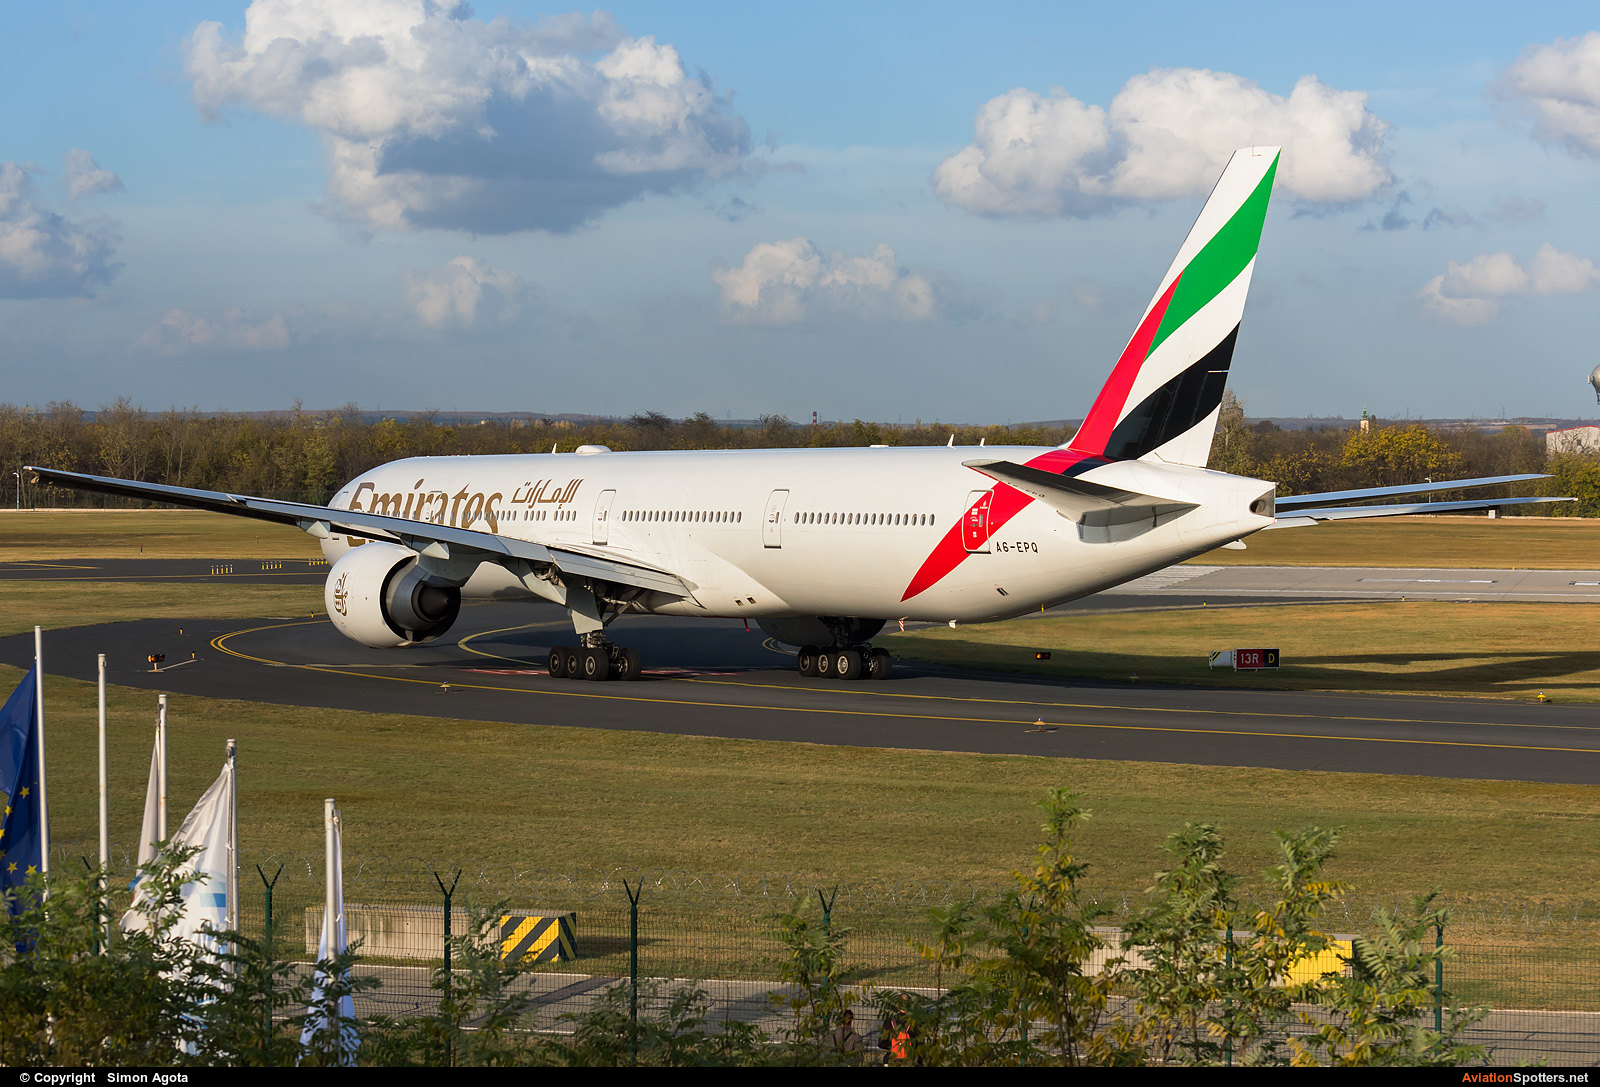 Emirates Airlines  -  777-300ER  (A6-EPQ) By Simon Agota (goti80)